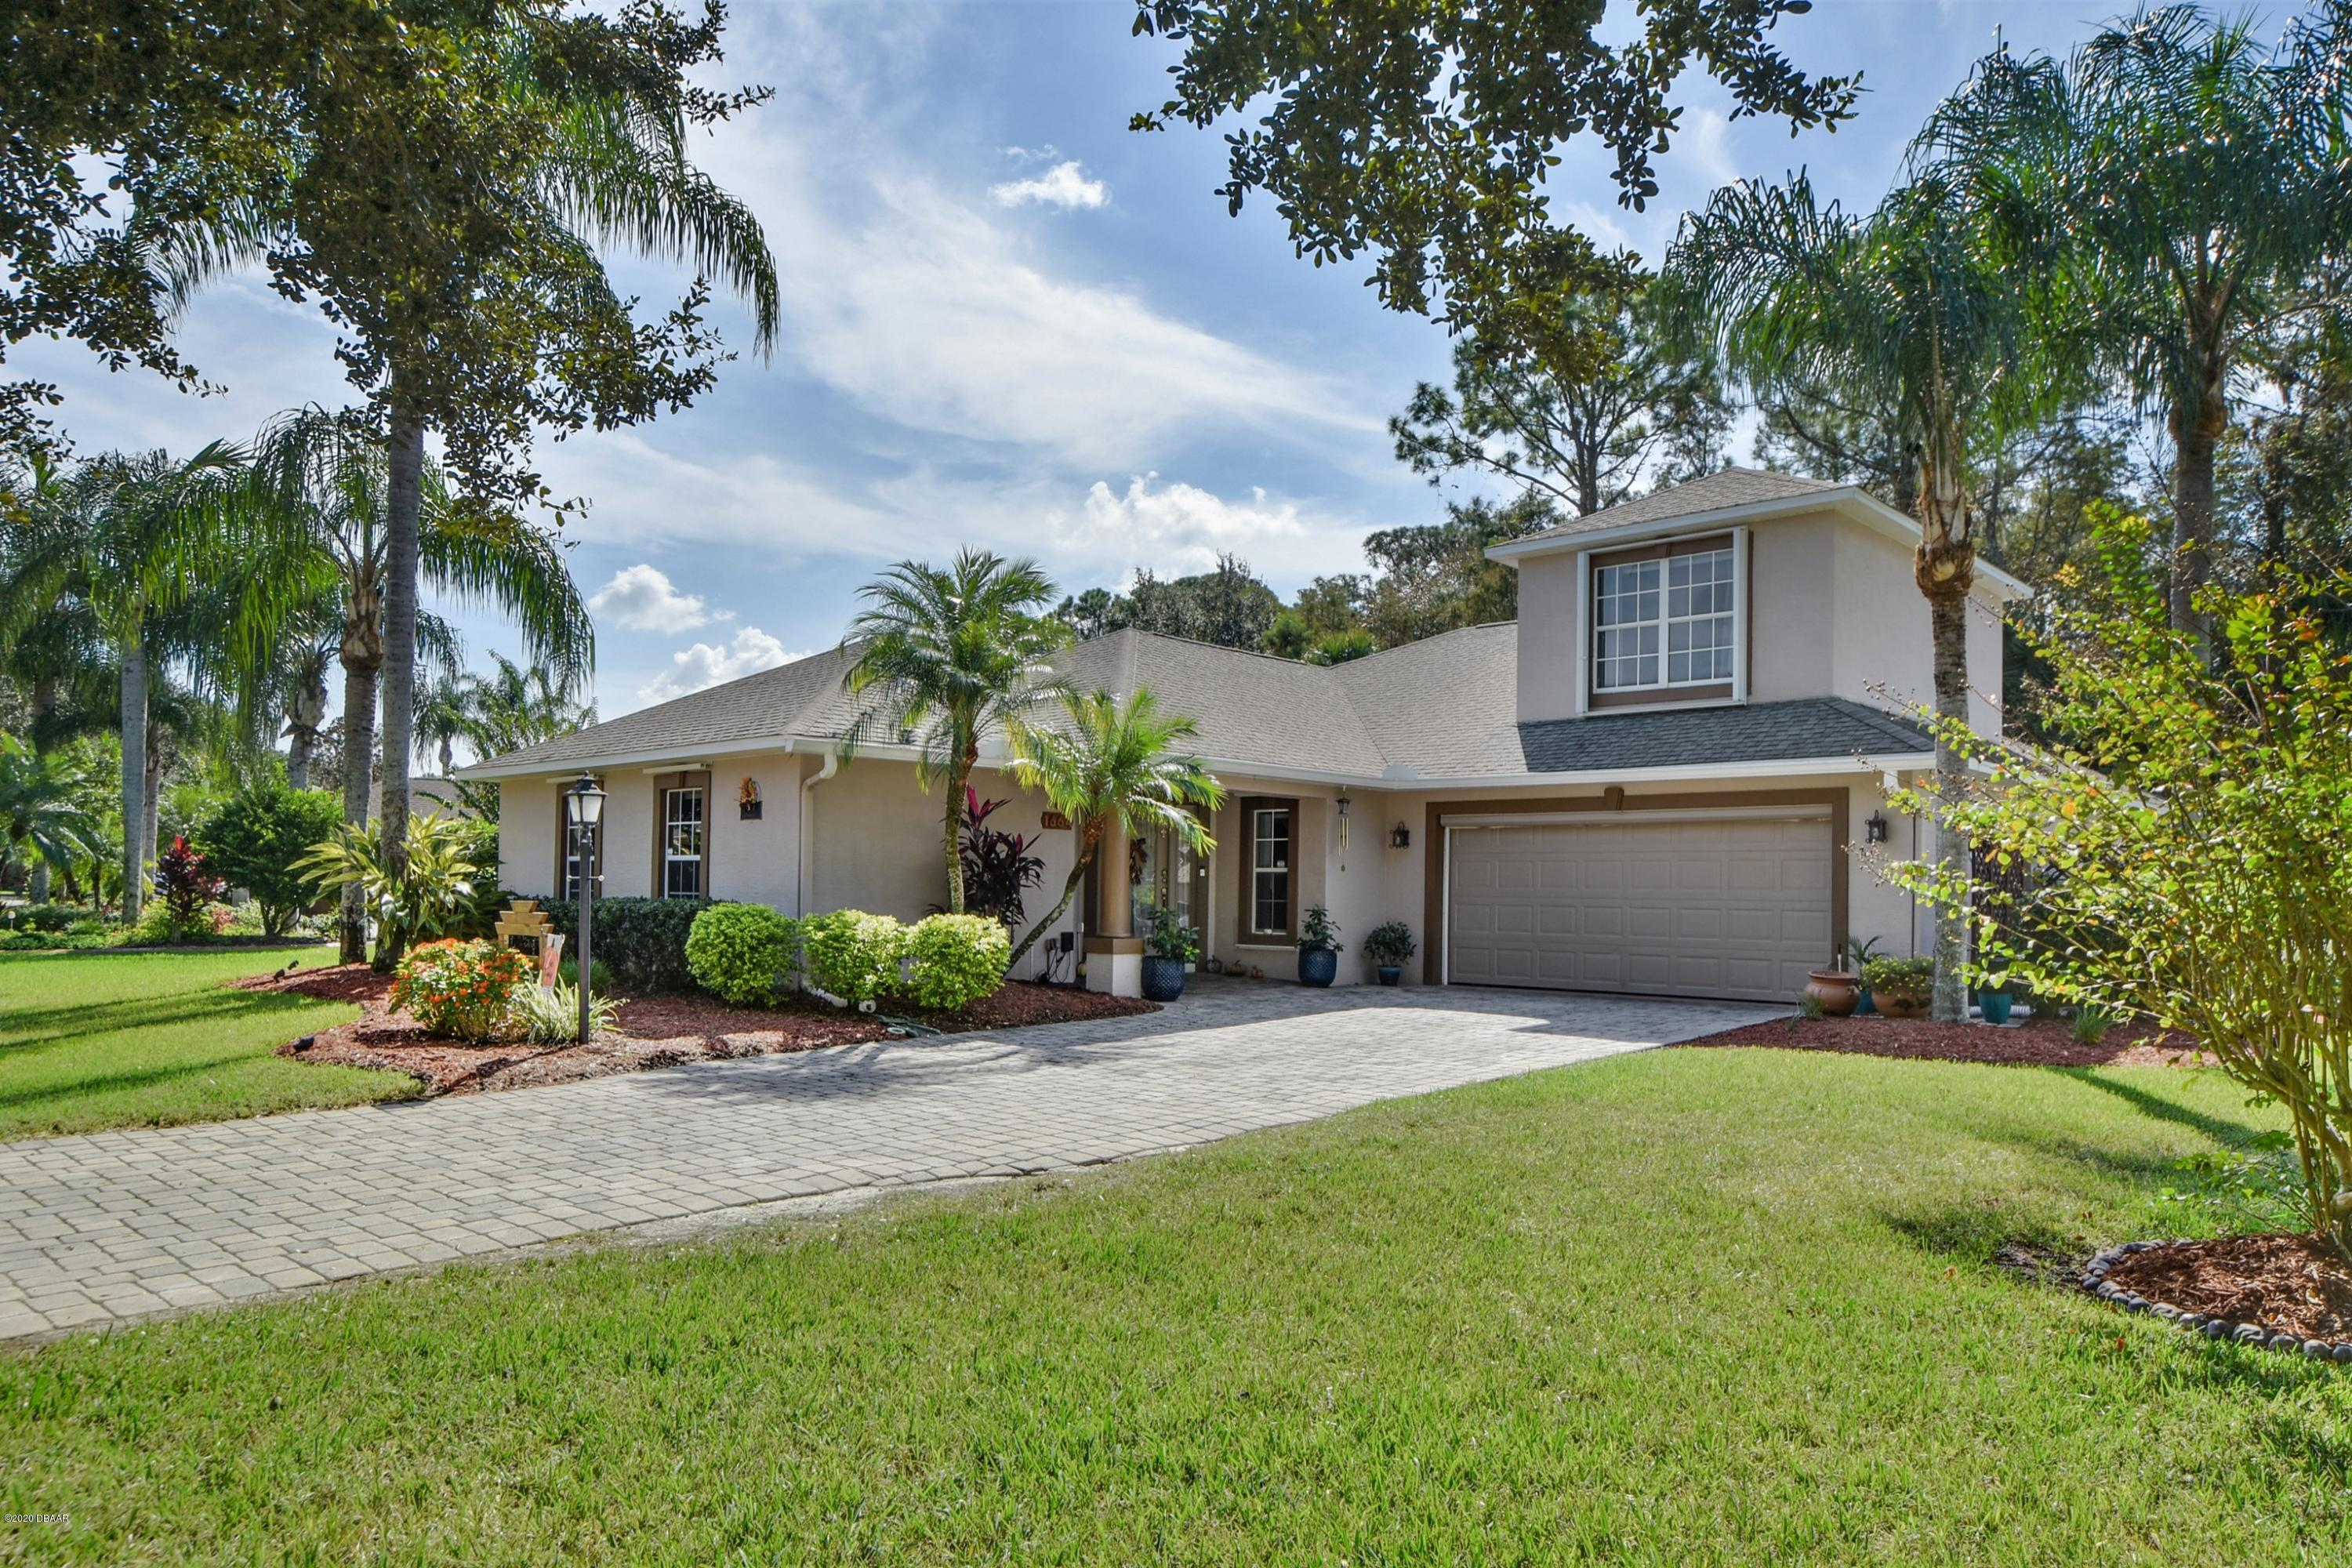 Photo of 1664 Promenade Circle, Port Orange, FL 32129